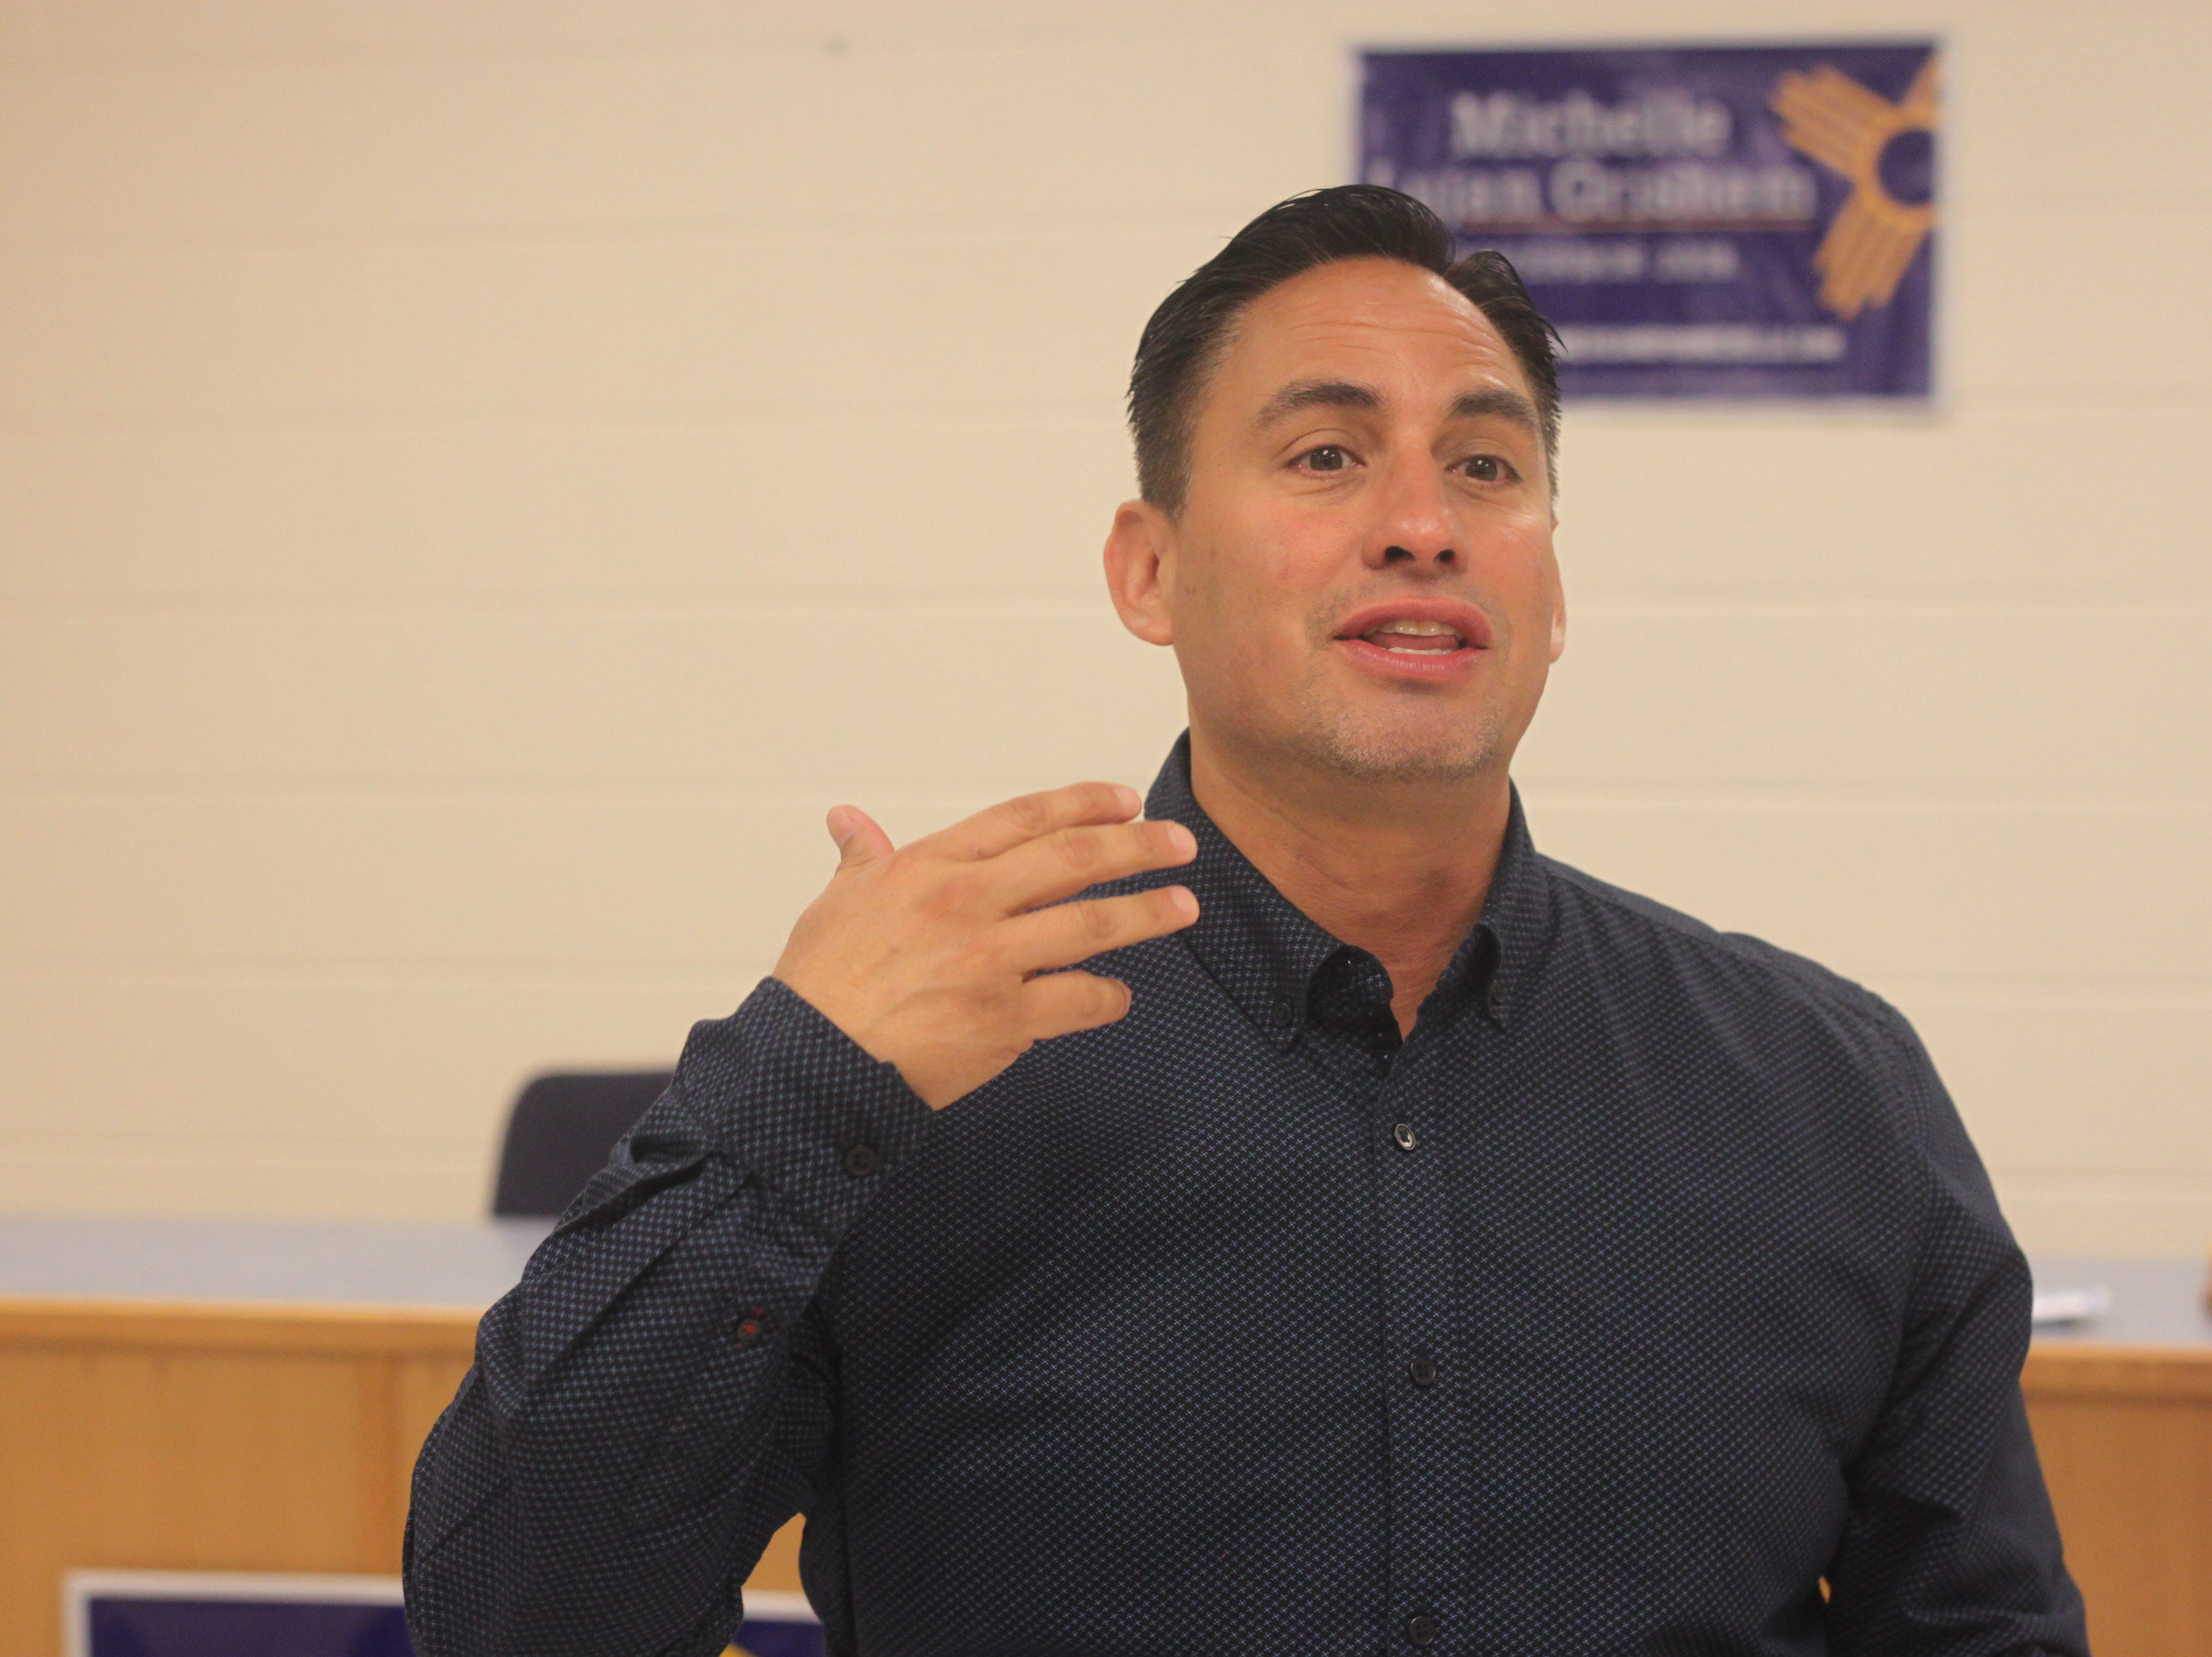 Candidate for New Mexico lieutenant governor Howie Morales addresses voters during a campaign stop, Aug. 29, 2018 in Carlsbad.